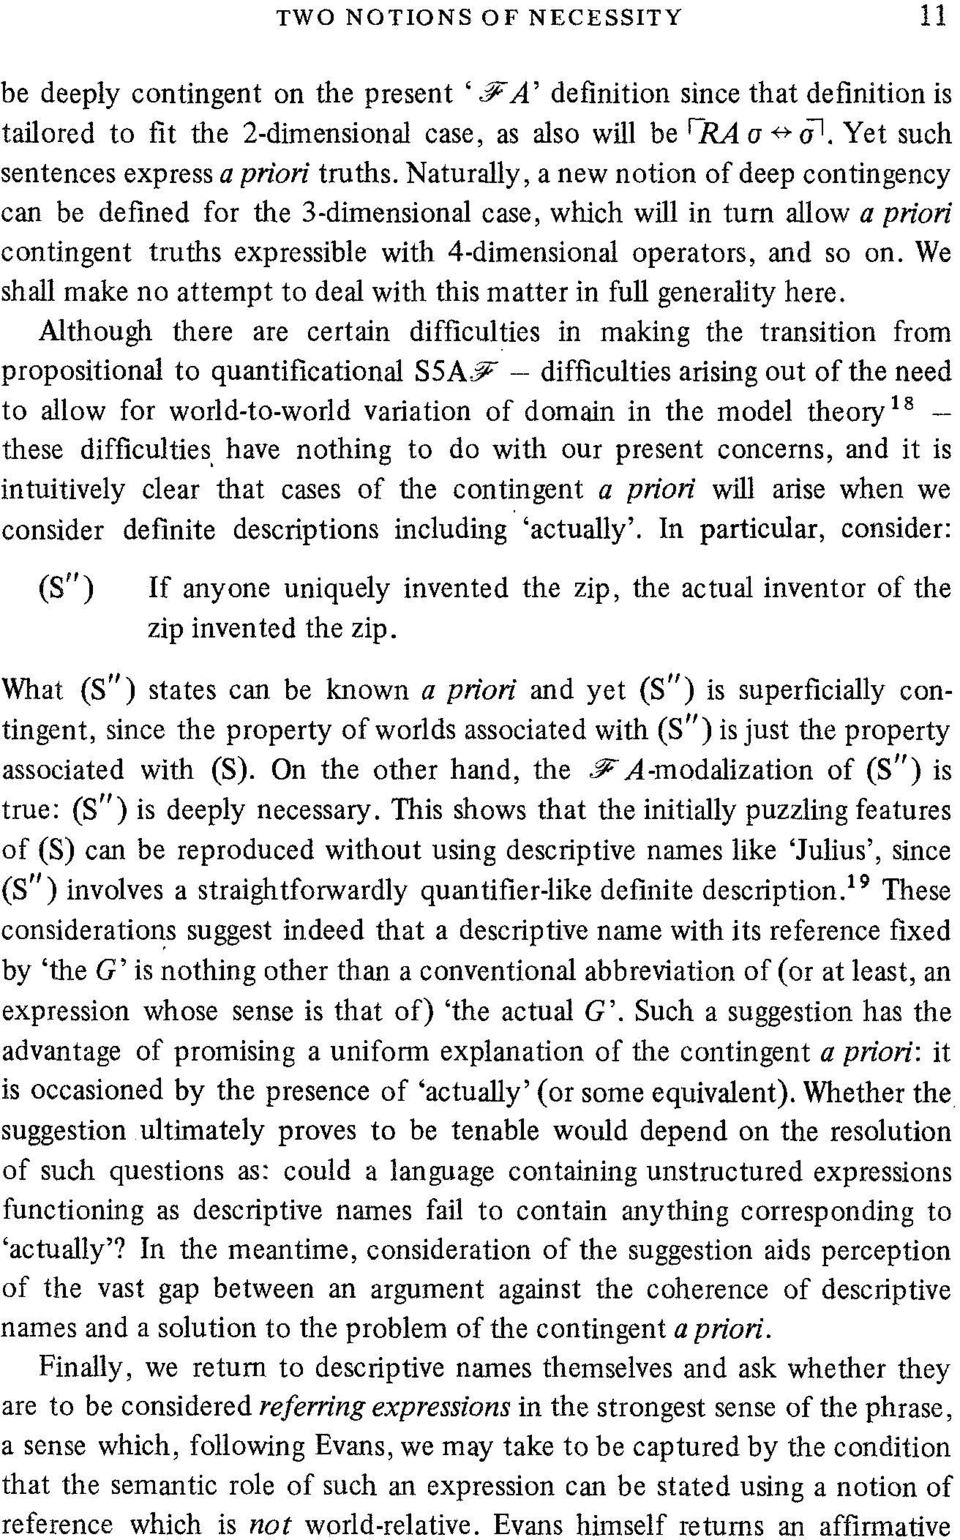 Naturally, a new notion of deep contingency can be defined for the 3-dimensional case, which will in turn allow a priori contingent truths expressible with 4-dimensional operators, and so on.